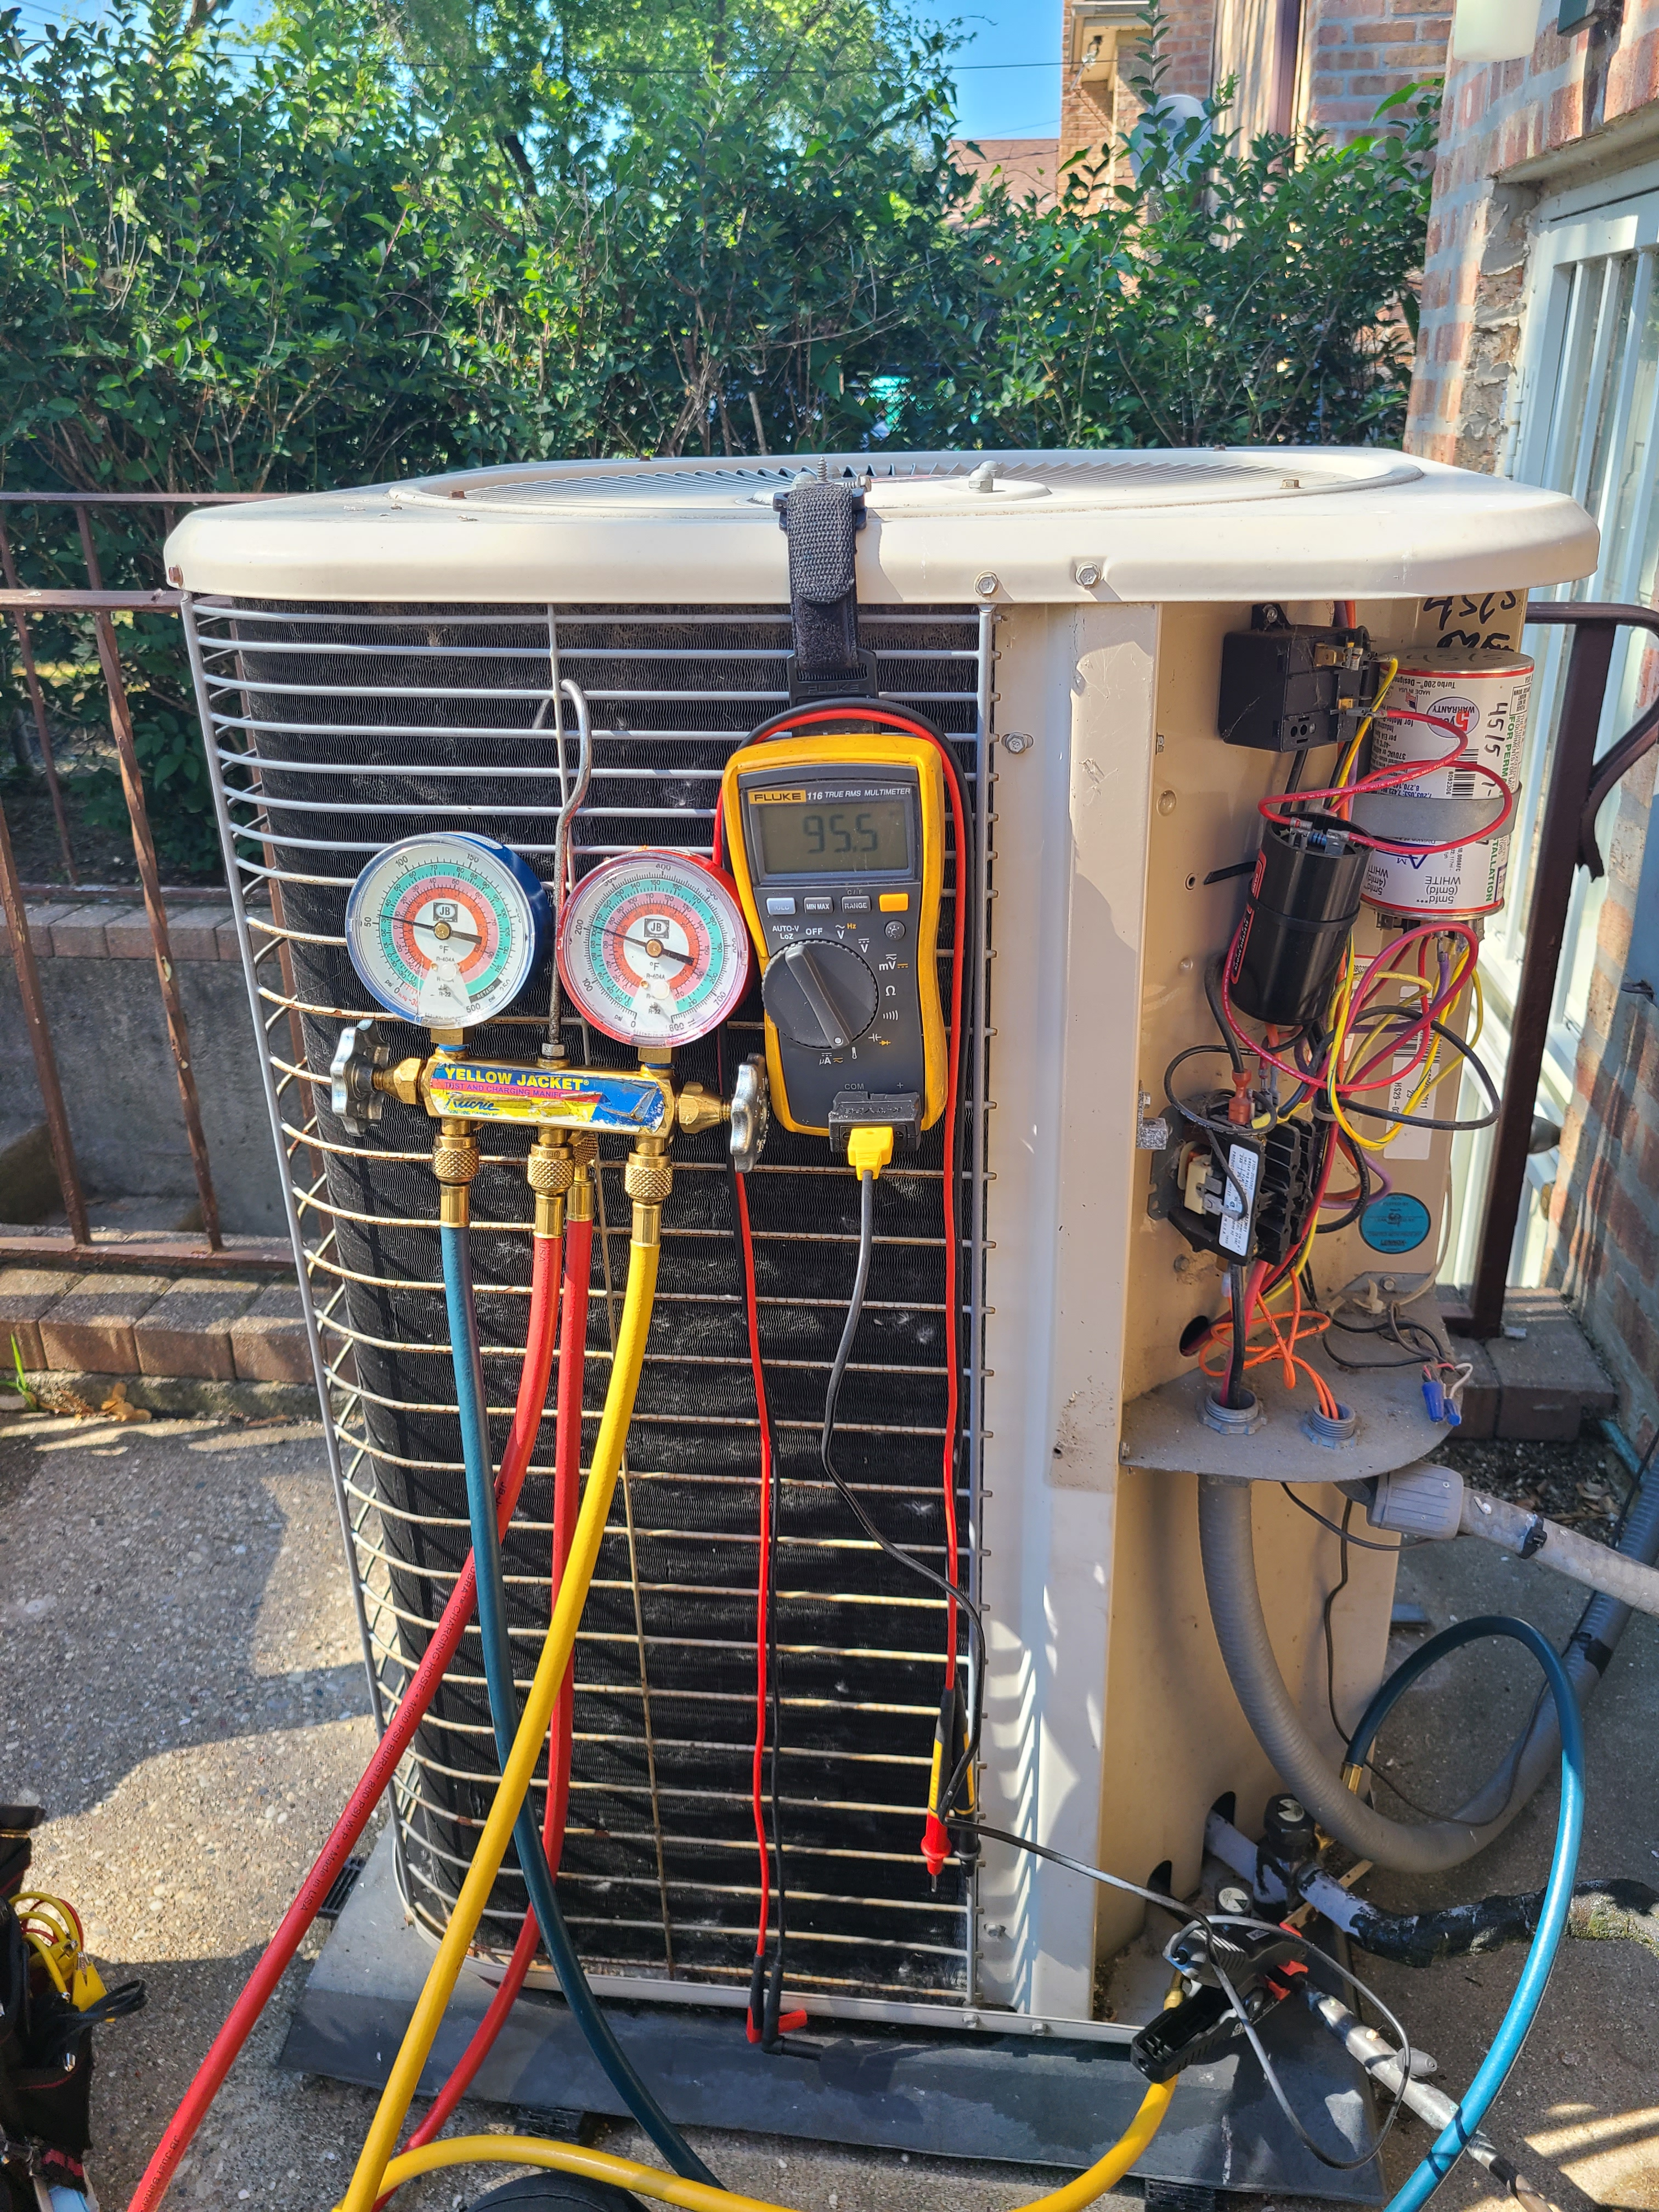 Lennox summer ac clean and check. System tuned up and ready for summer.